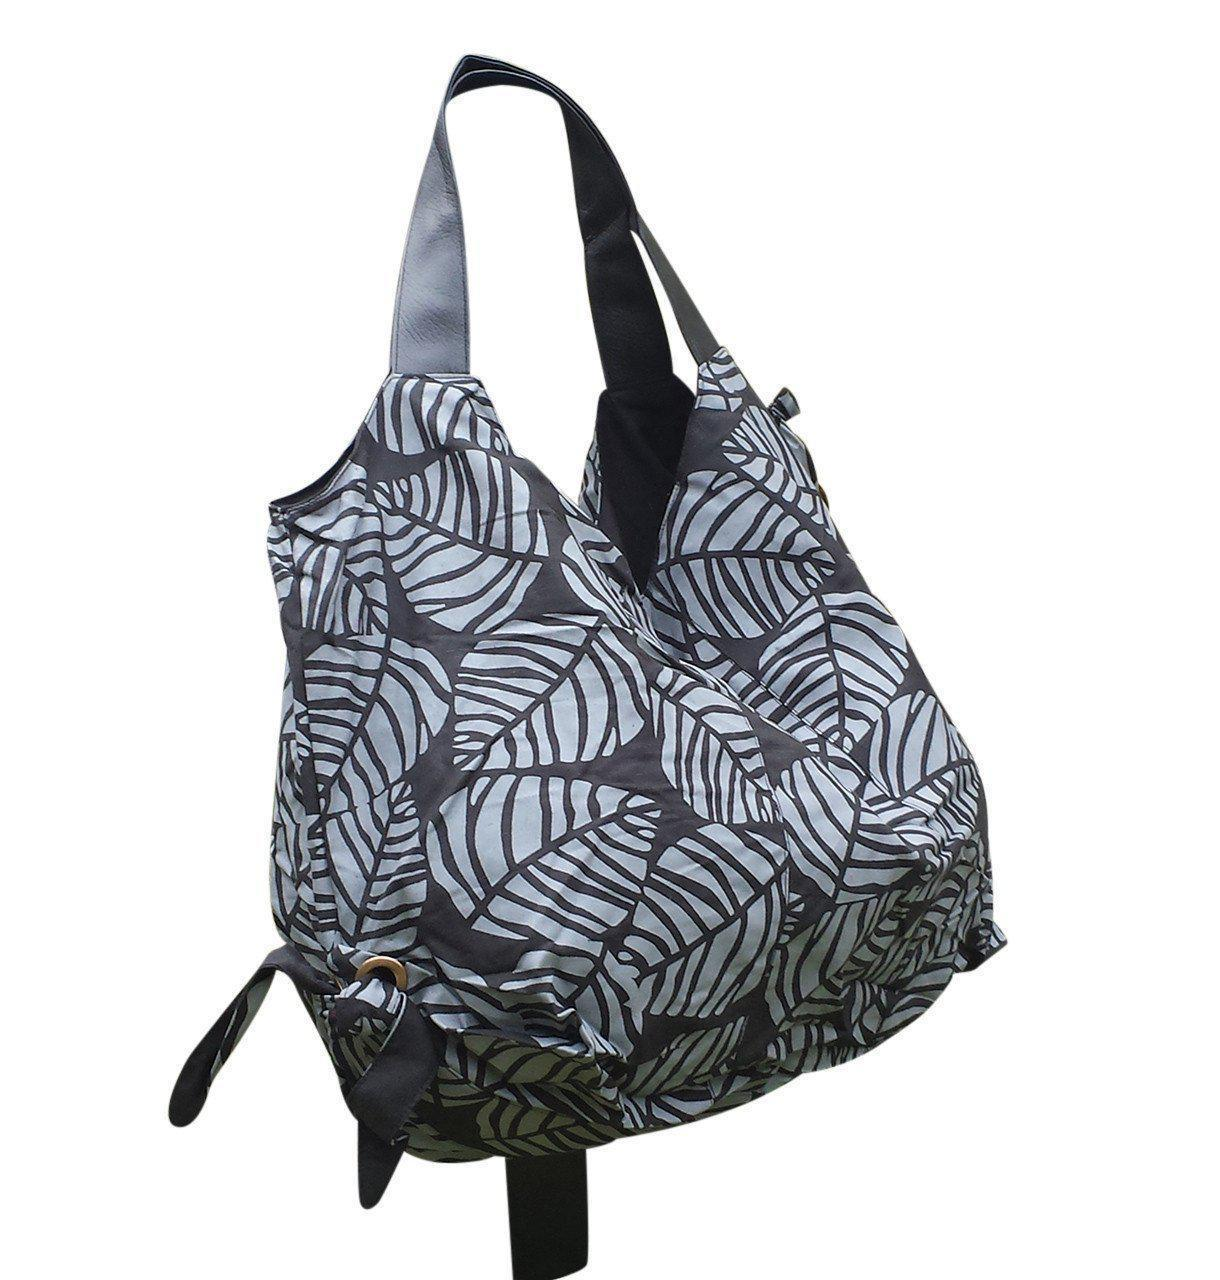 Black Shoulder Bag with Leaf Design